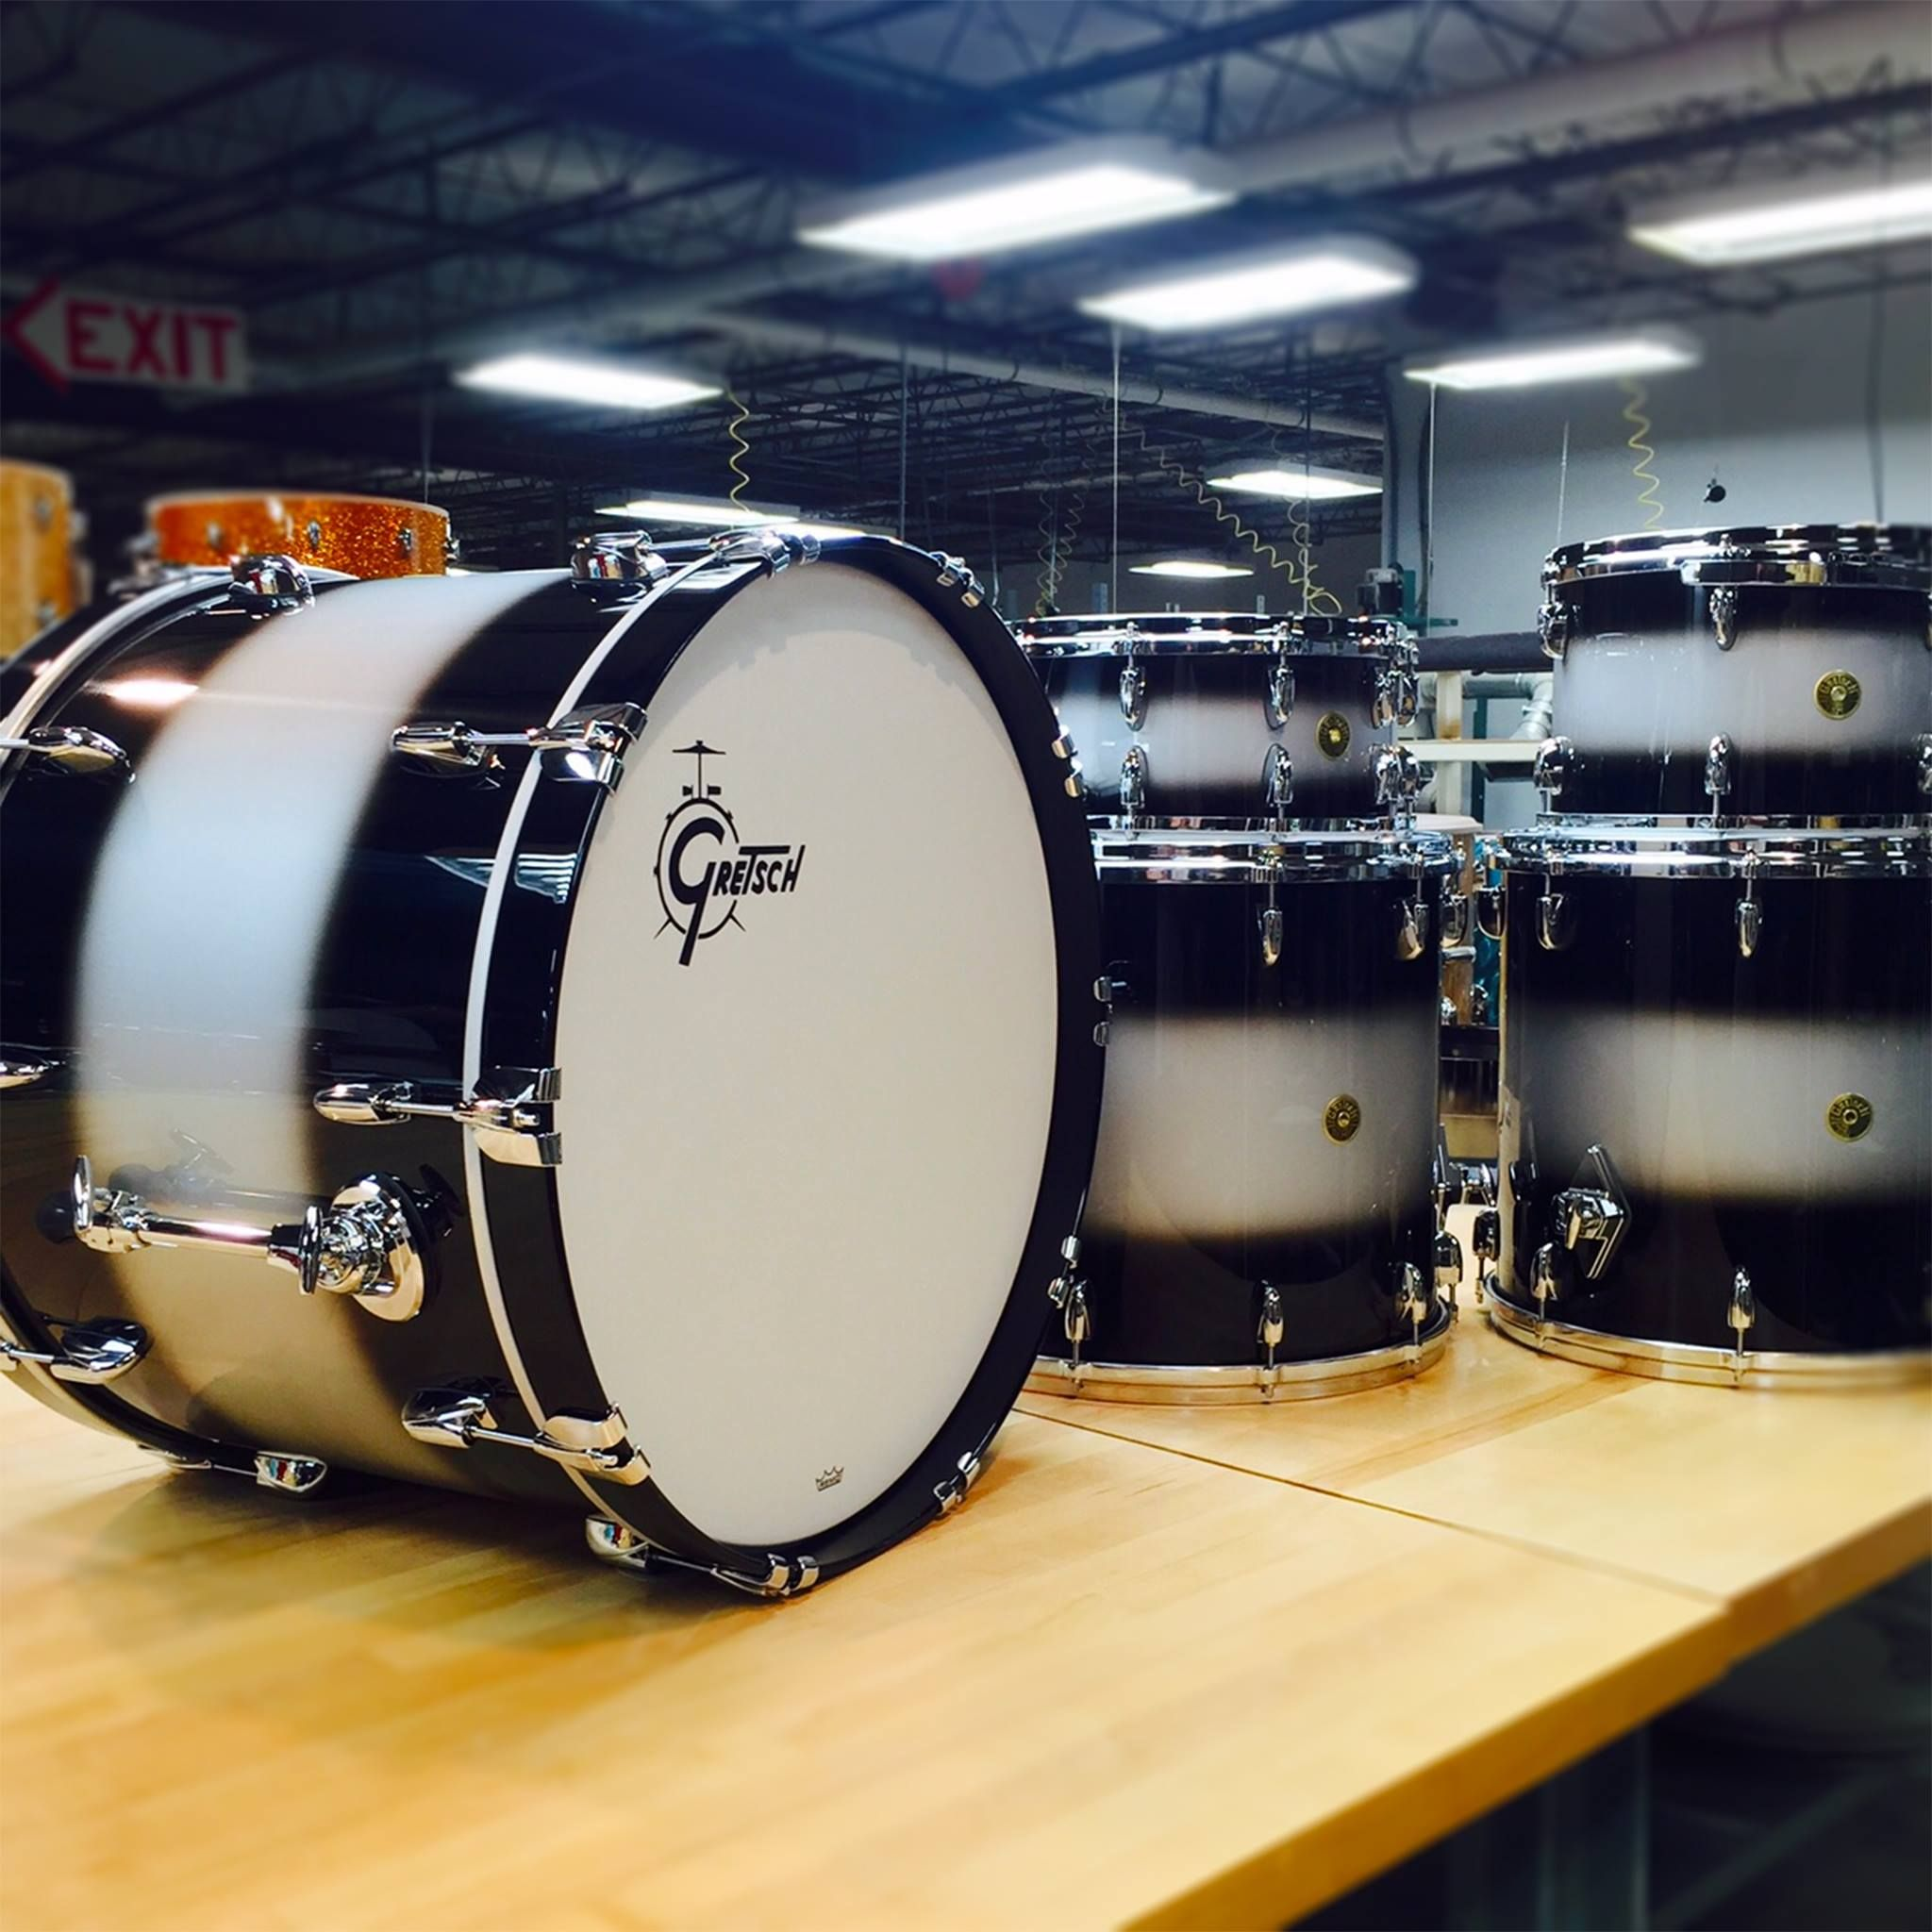 gretsch usa custom black silver duco muse in 2019 gretsch drums drums snare drum. Black Bedroom Furniture Sets. Home Design Ideas